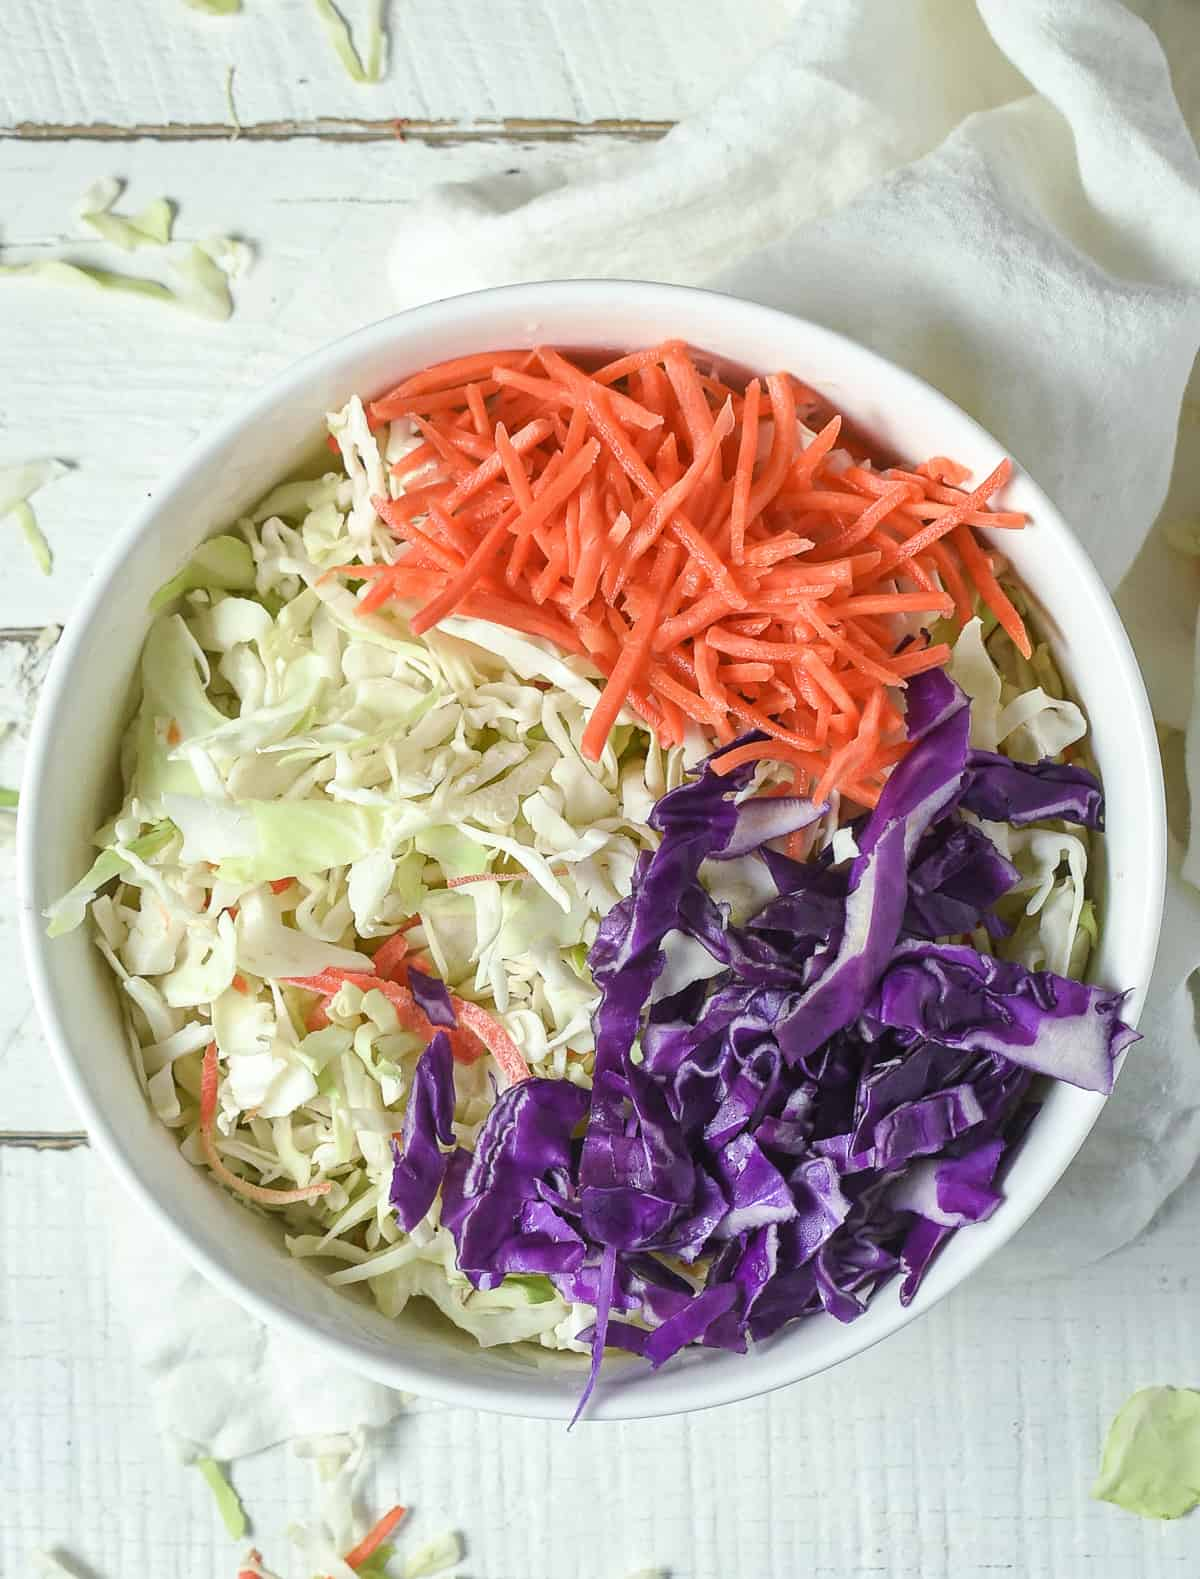 Green cabbage, red cabbage, and carrots in bowl.